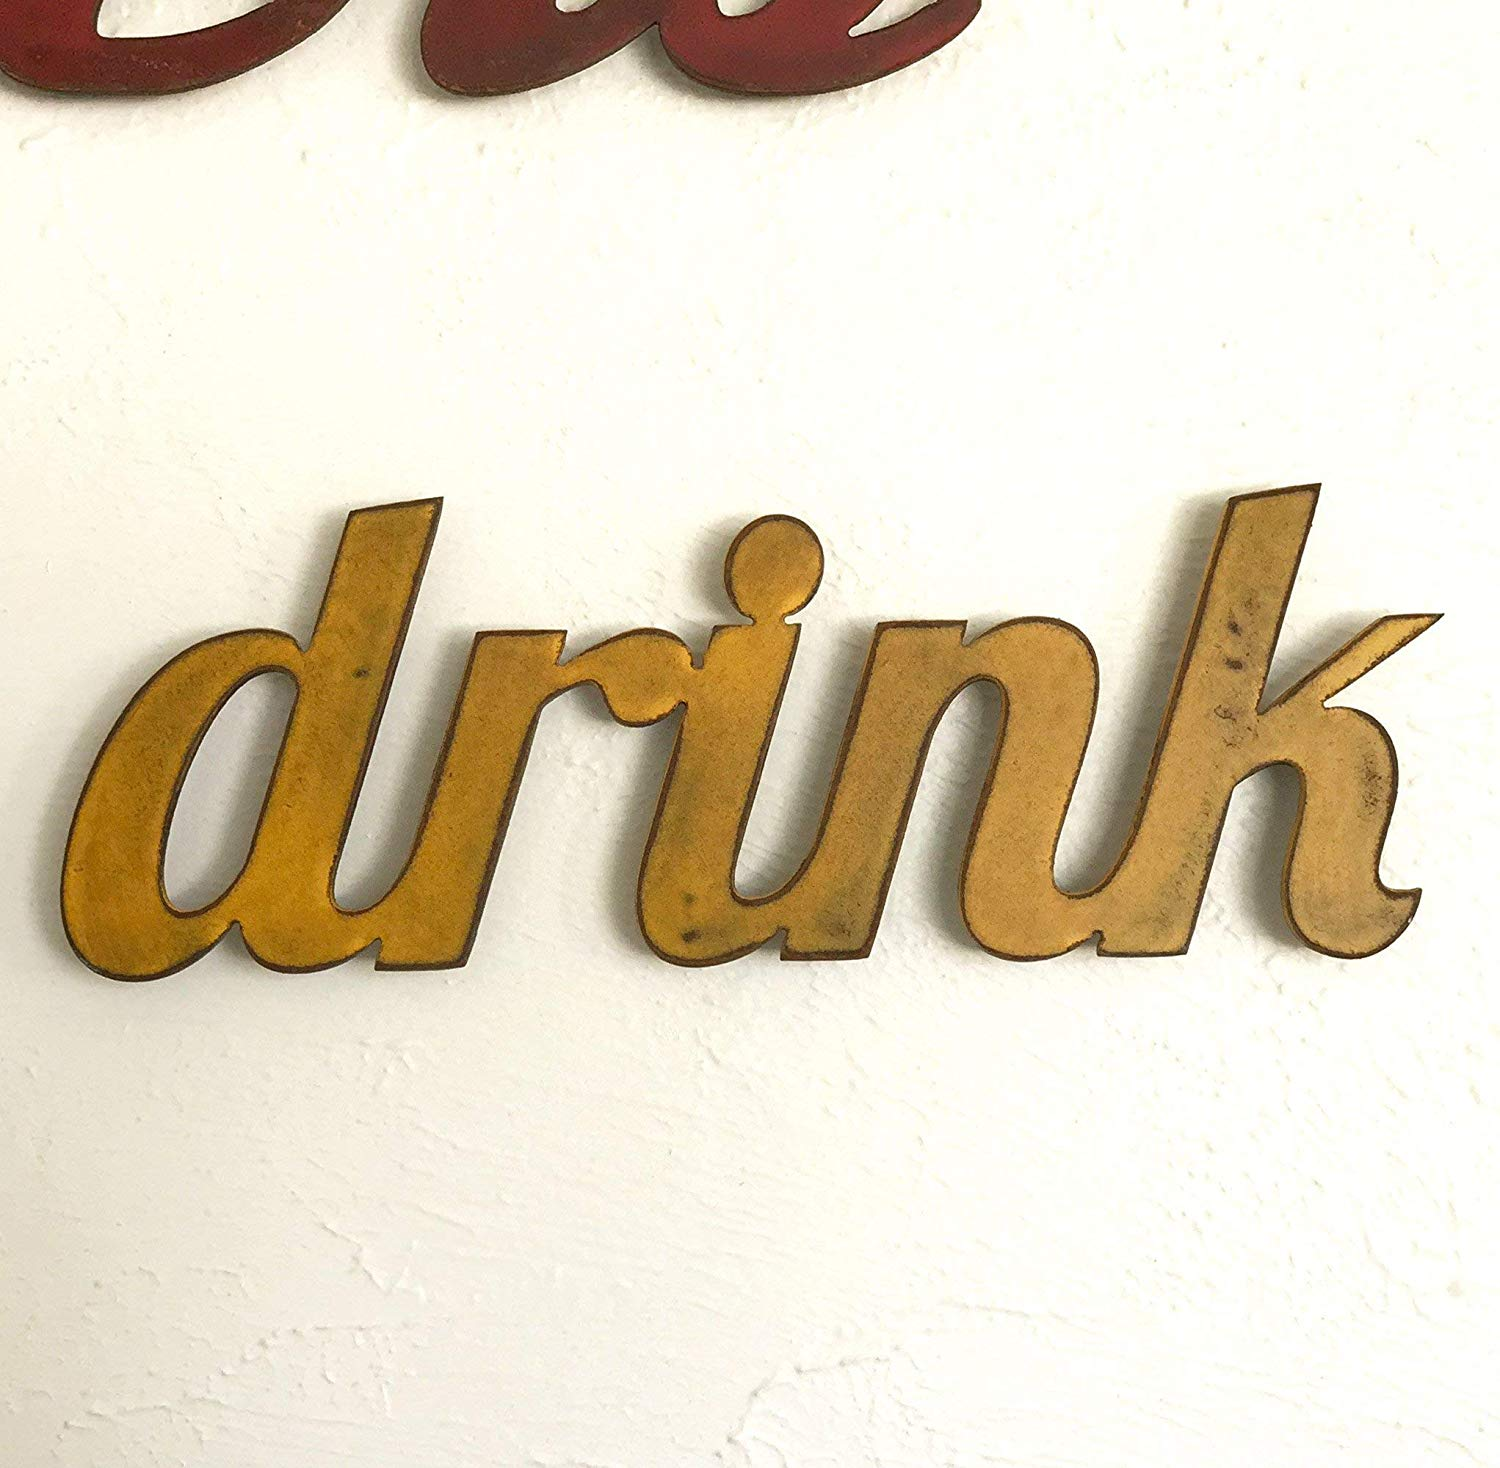 "drink - Metal Wall Art home decor - Handmade - Choose 16"", 24.5"" or 33.25"" long, Choose your Patina Color, OR You can choose ANY 2-9 letter custom word! (see options)"